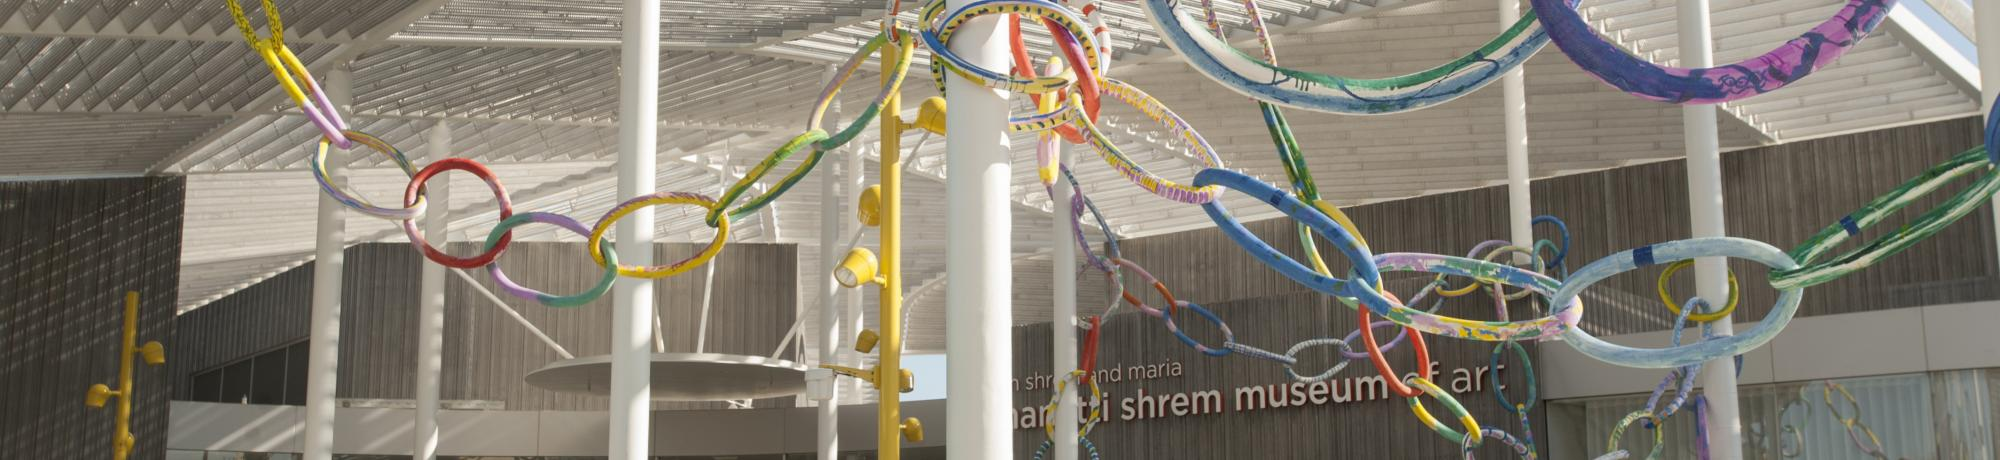 The ribbon chain on the Jan Shrem and Maria Manetti Shrem Museum on November 9, 2016.